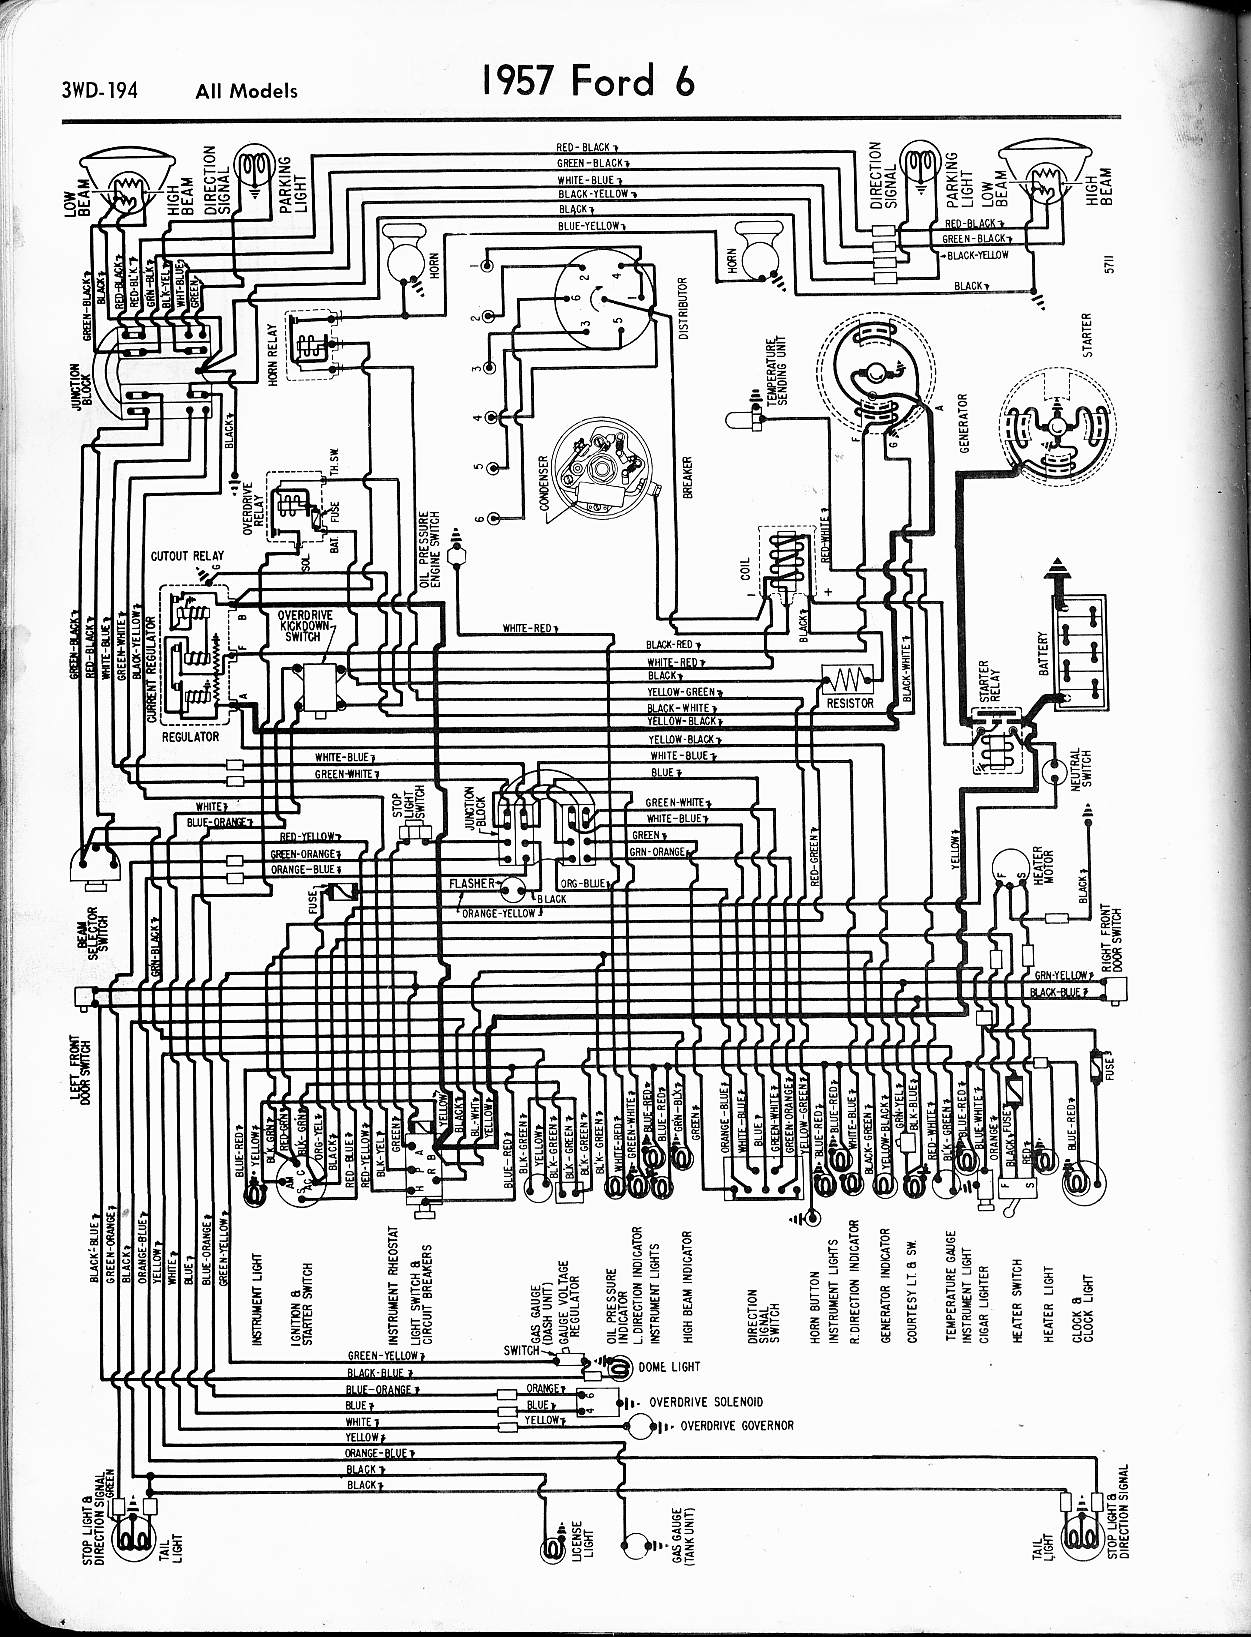 MWire5765 194 57 65 ford wiring diagrams ford truck wiring diagrams free at webbmarketing.co